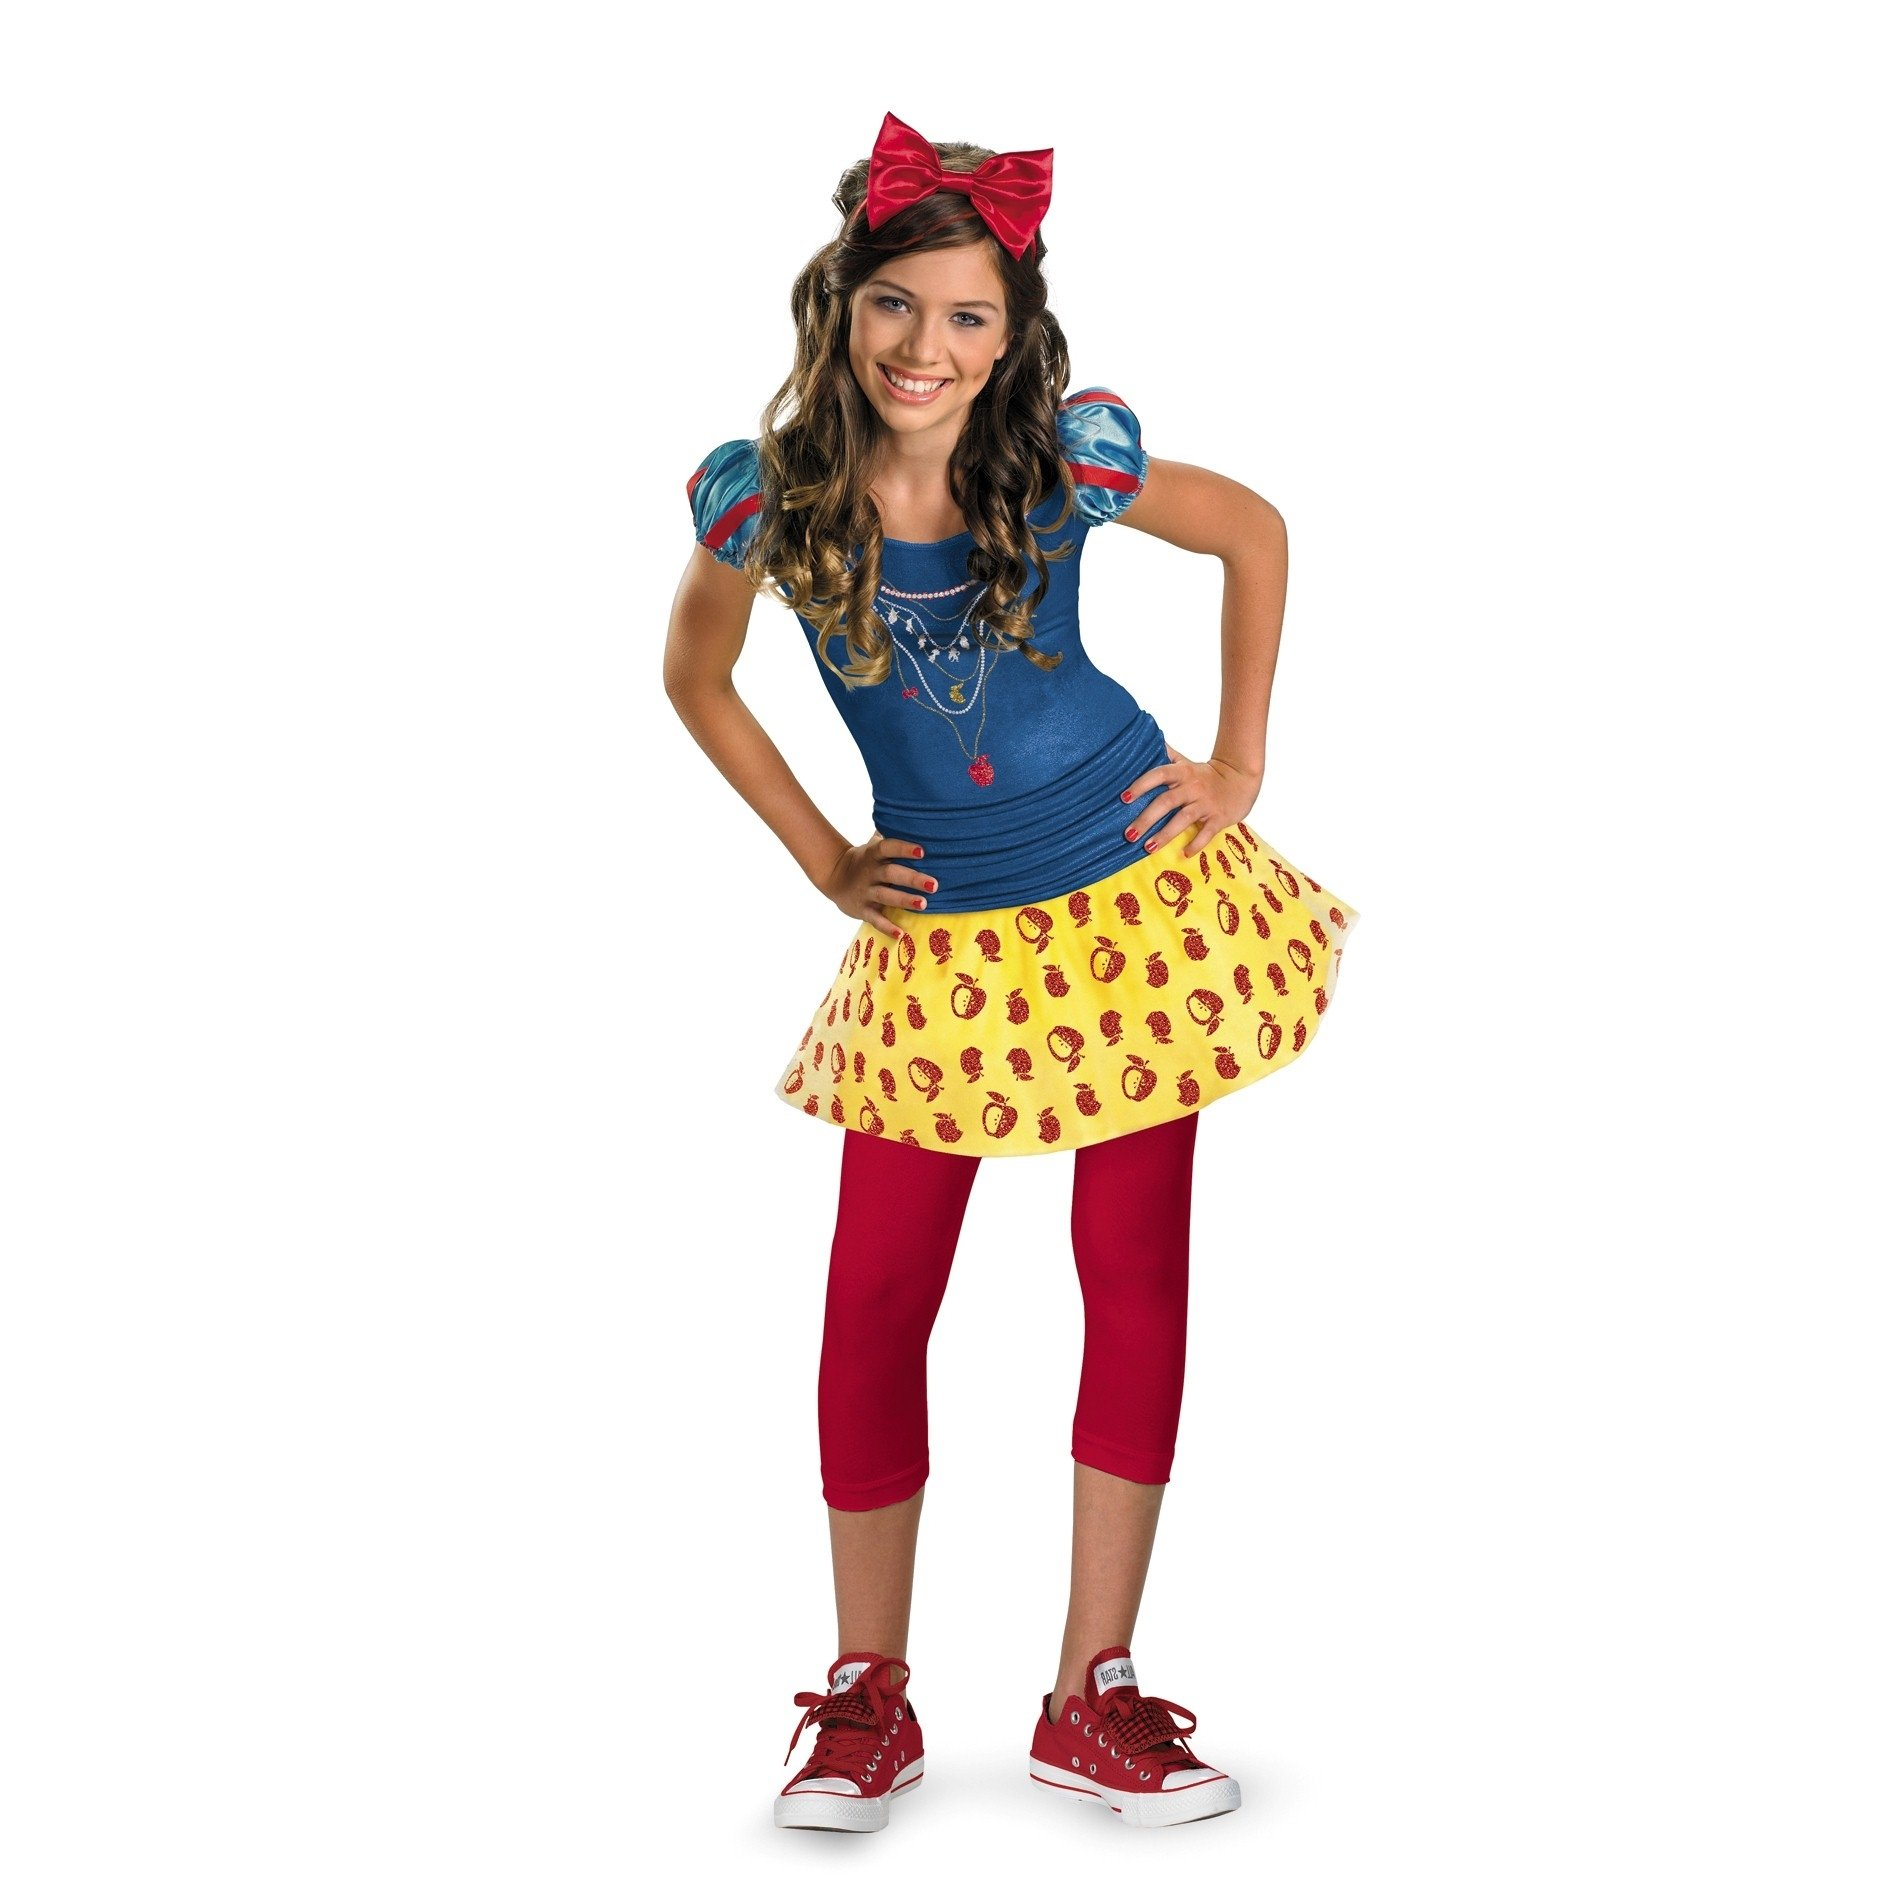 10 Awesome Cute Halloween Costume Ideas For Women